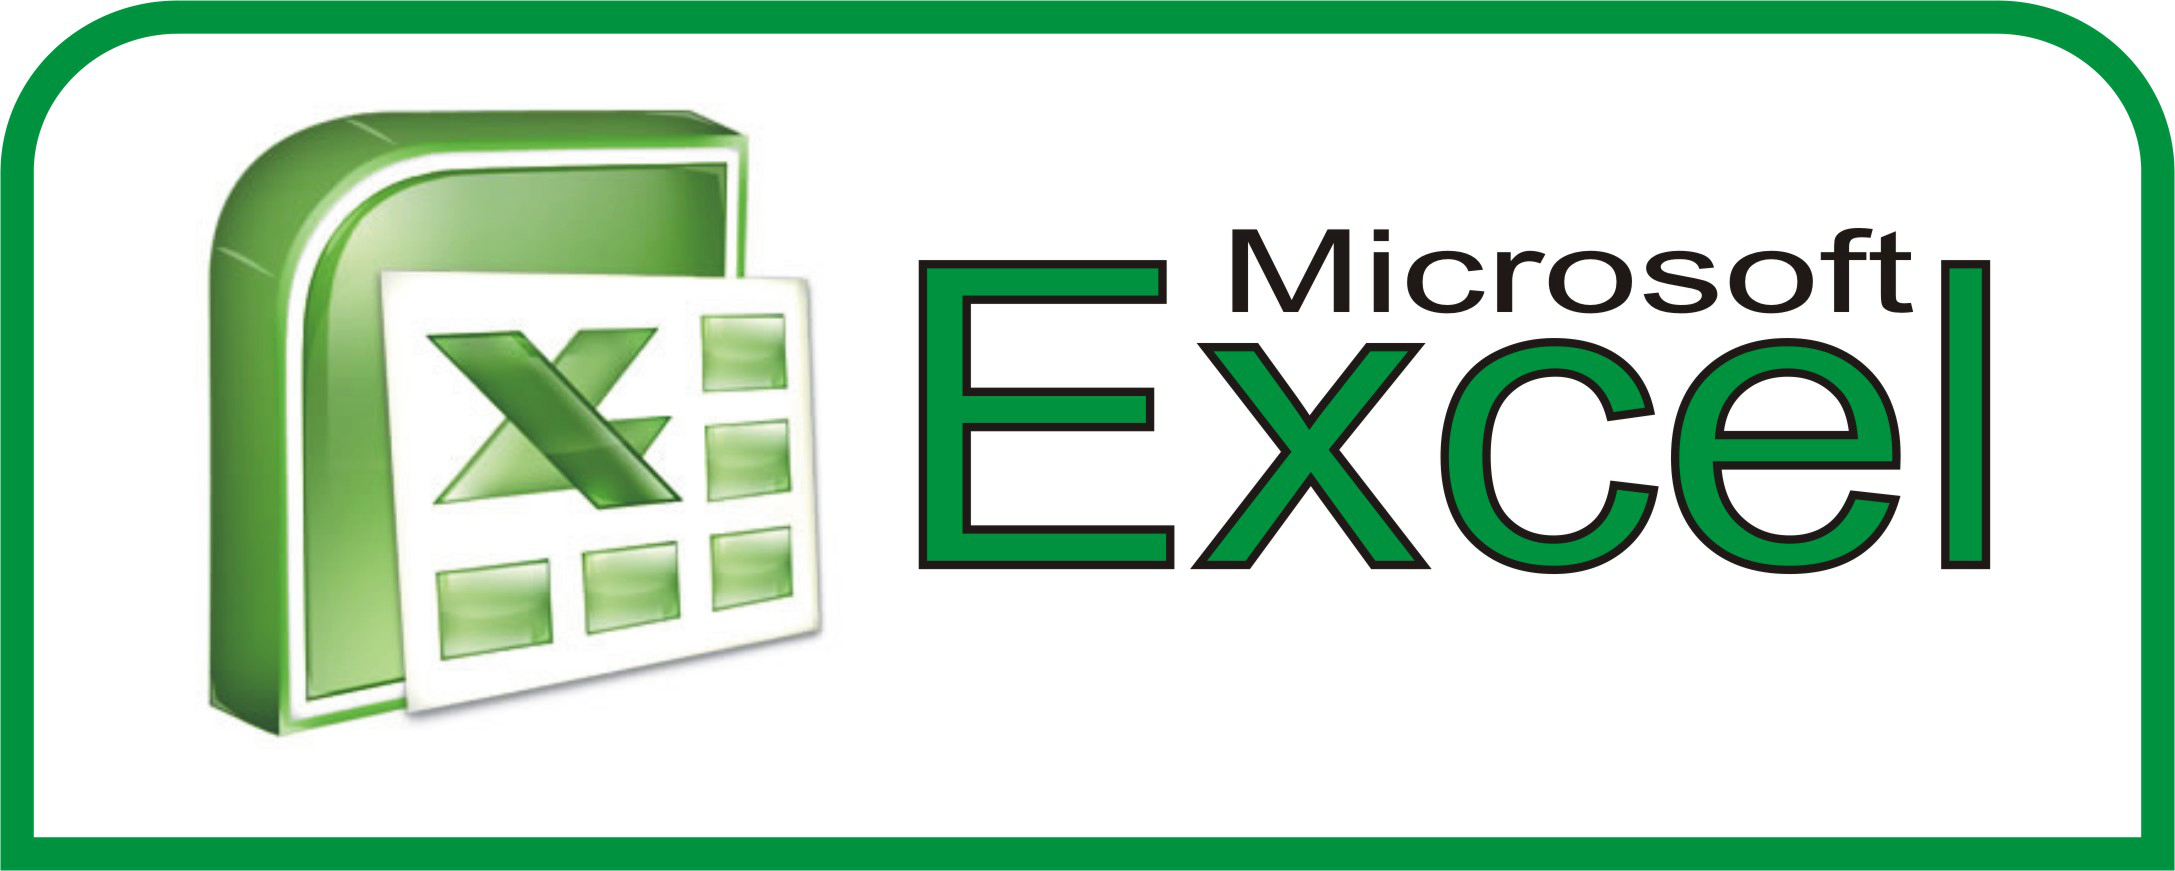 Ediblewildsus  Seductive  Excel Shortcuts You Probably Didnt Know About  Techdissected With Hot Zip Code Map Excel Besides Semilog Plot Excel Furthermore Xml In Excel  With Attractive Excel Concatenate Formula Also Export From Excel To Word In Addition Excel Formula Percent Change And Export Data From Access To Excel As Well As Excel Gauge Chart Template Additionally Simple Bill Format In Excel From Techdissectedcom With Ediblewildsus  Hot  Excel Shortcuts You Probably Didnt Know About  Techdissected With Attractive Zip Code Map Excel Besides Semilog Plot Excel Furthermore Xml In Excel  And Seductive Excel Concatenate Formula Also Export From Excel To Word In Addition Excel Formula Percent Change From Techdissectedcom